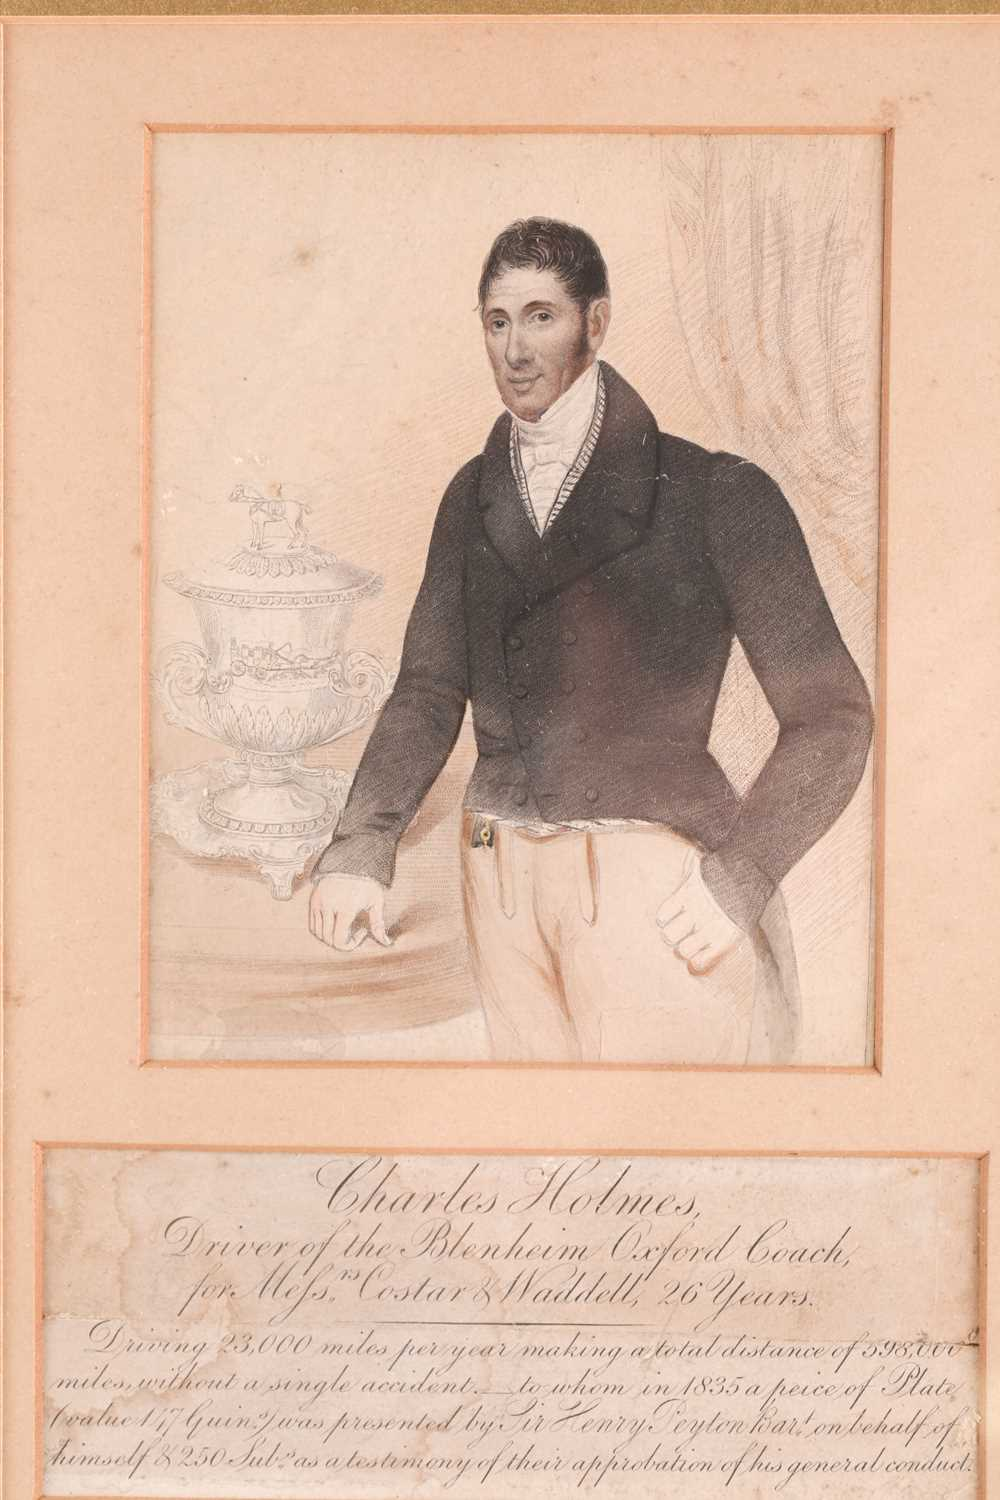 A 19th century coloured engraving, portrait of Charles Holmes, 'Driver of the Blenheim Oxford Coach, - Image 2 of 3